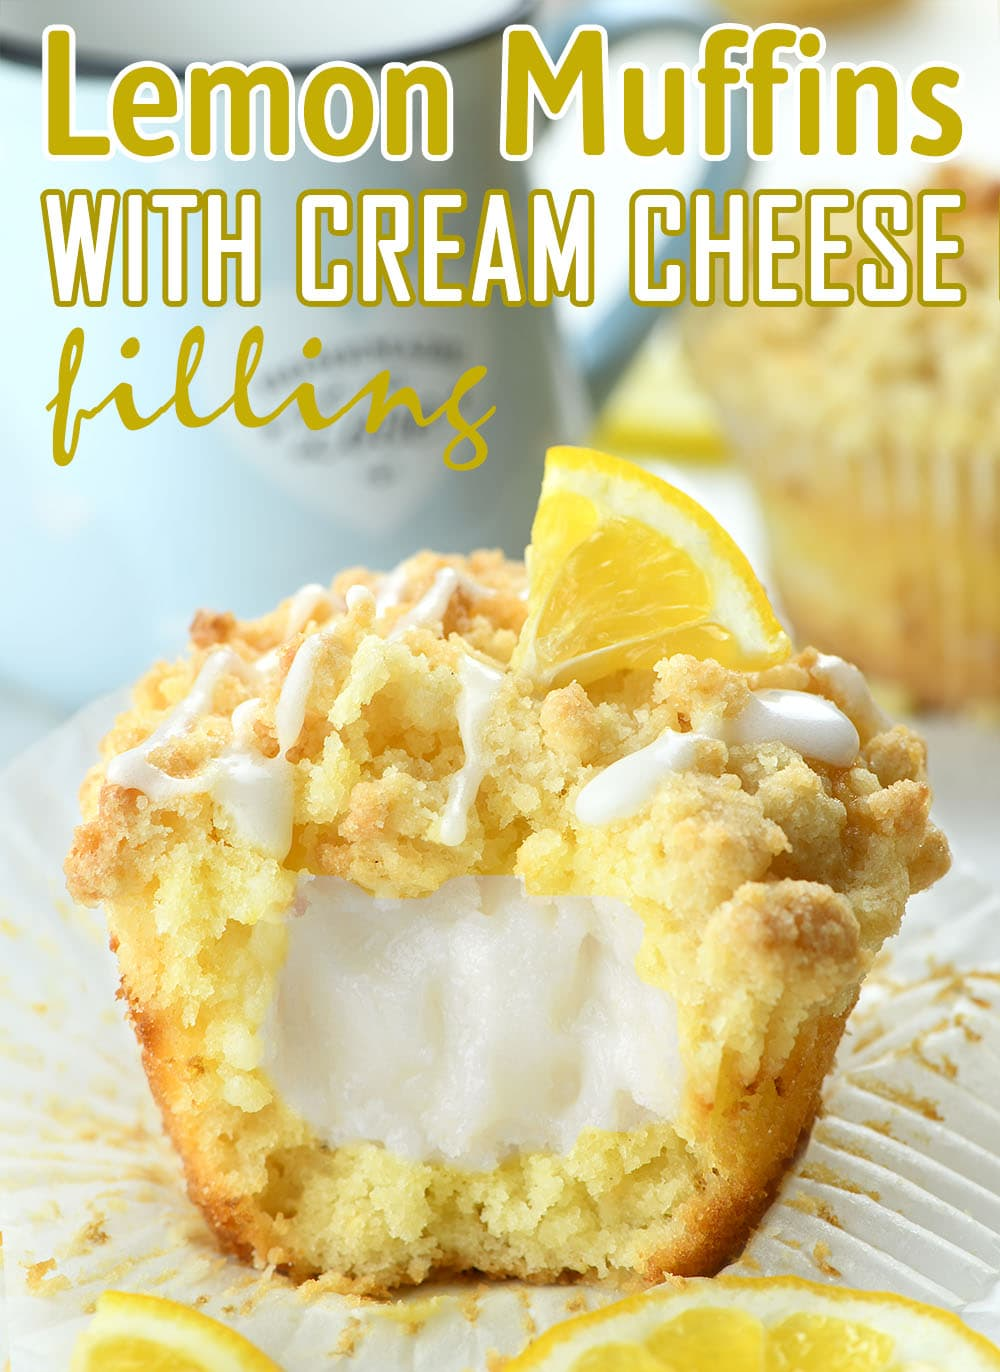 Lemon Cream Cheese Muffin topped with sugar icing , streusel crumbs and lemon on the top.